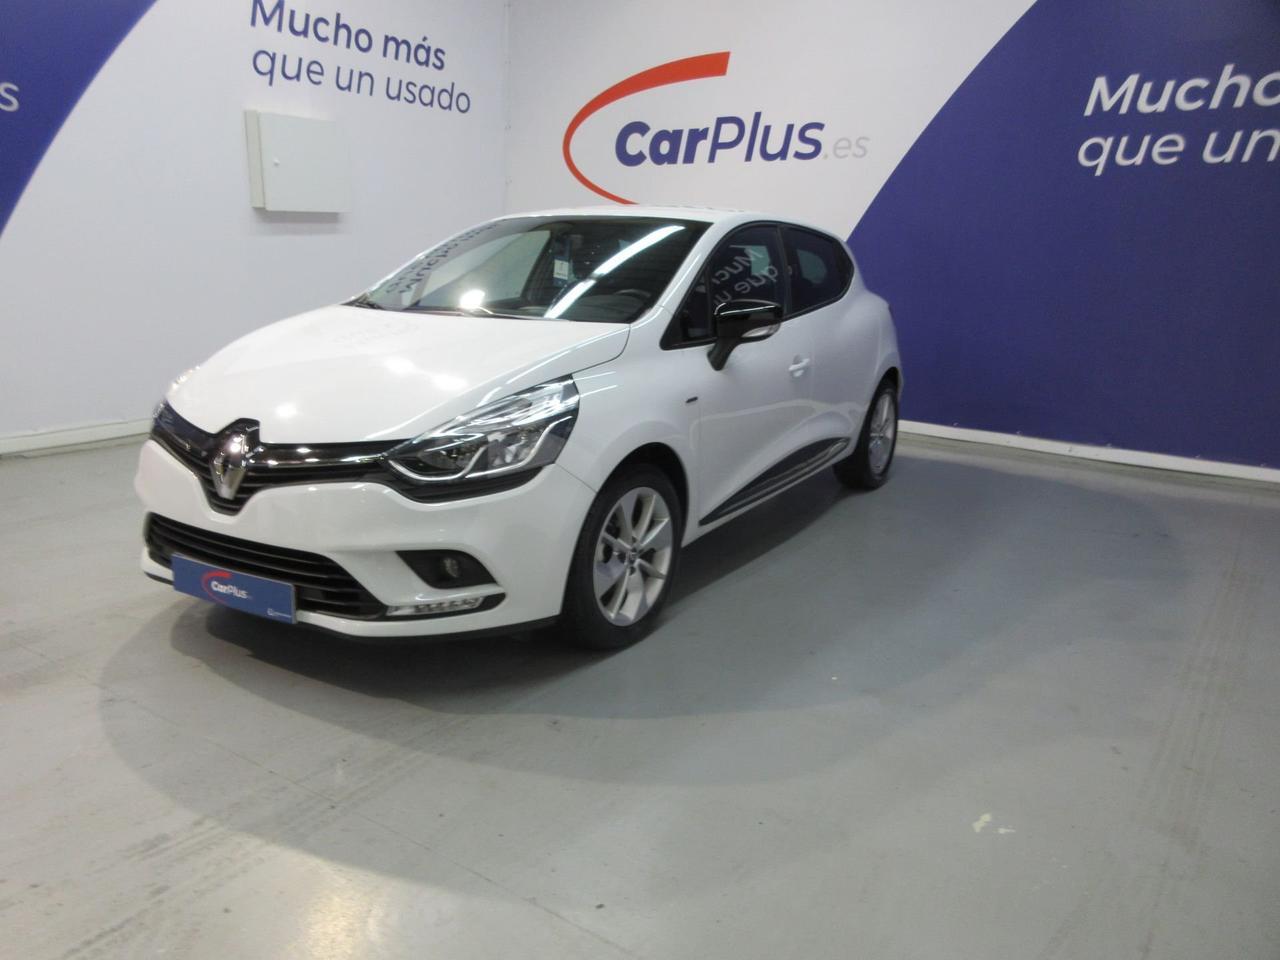 Array Renault Clio 2018 Diésel por 10.190€ en Madrid